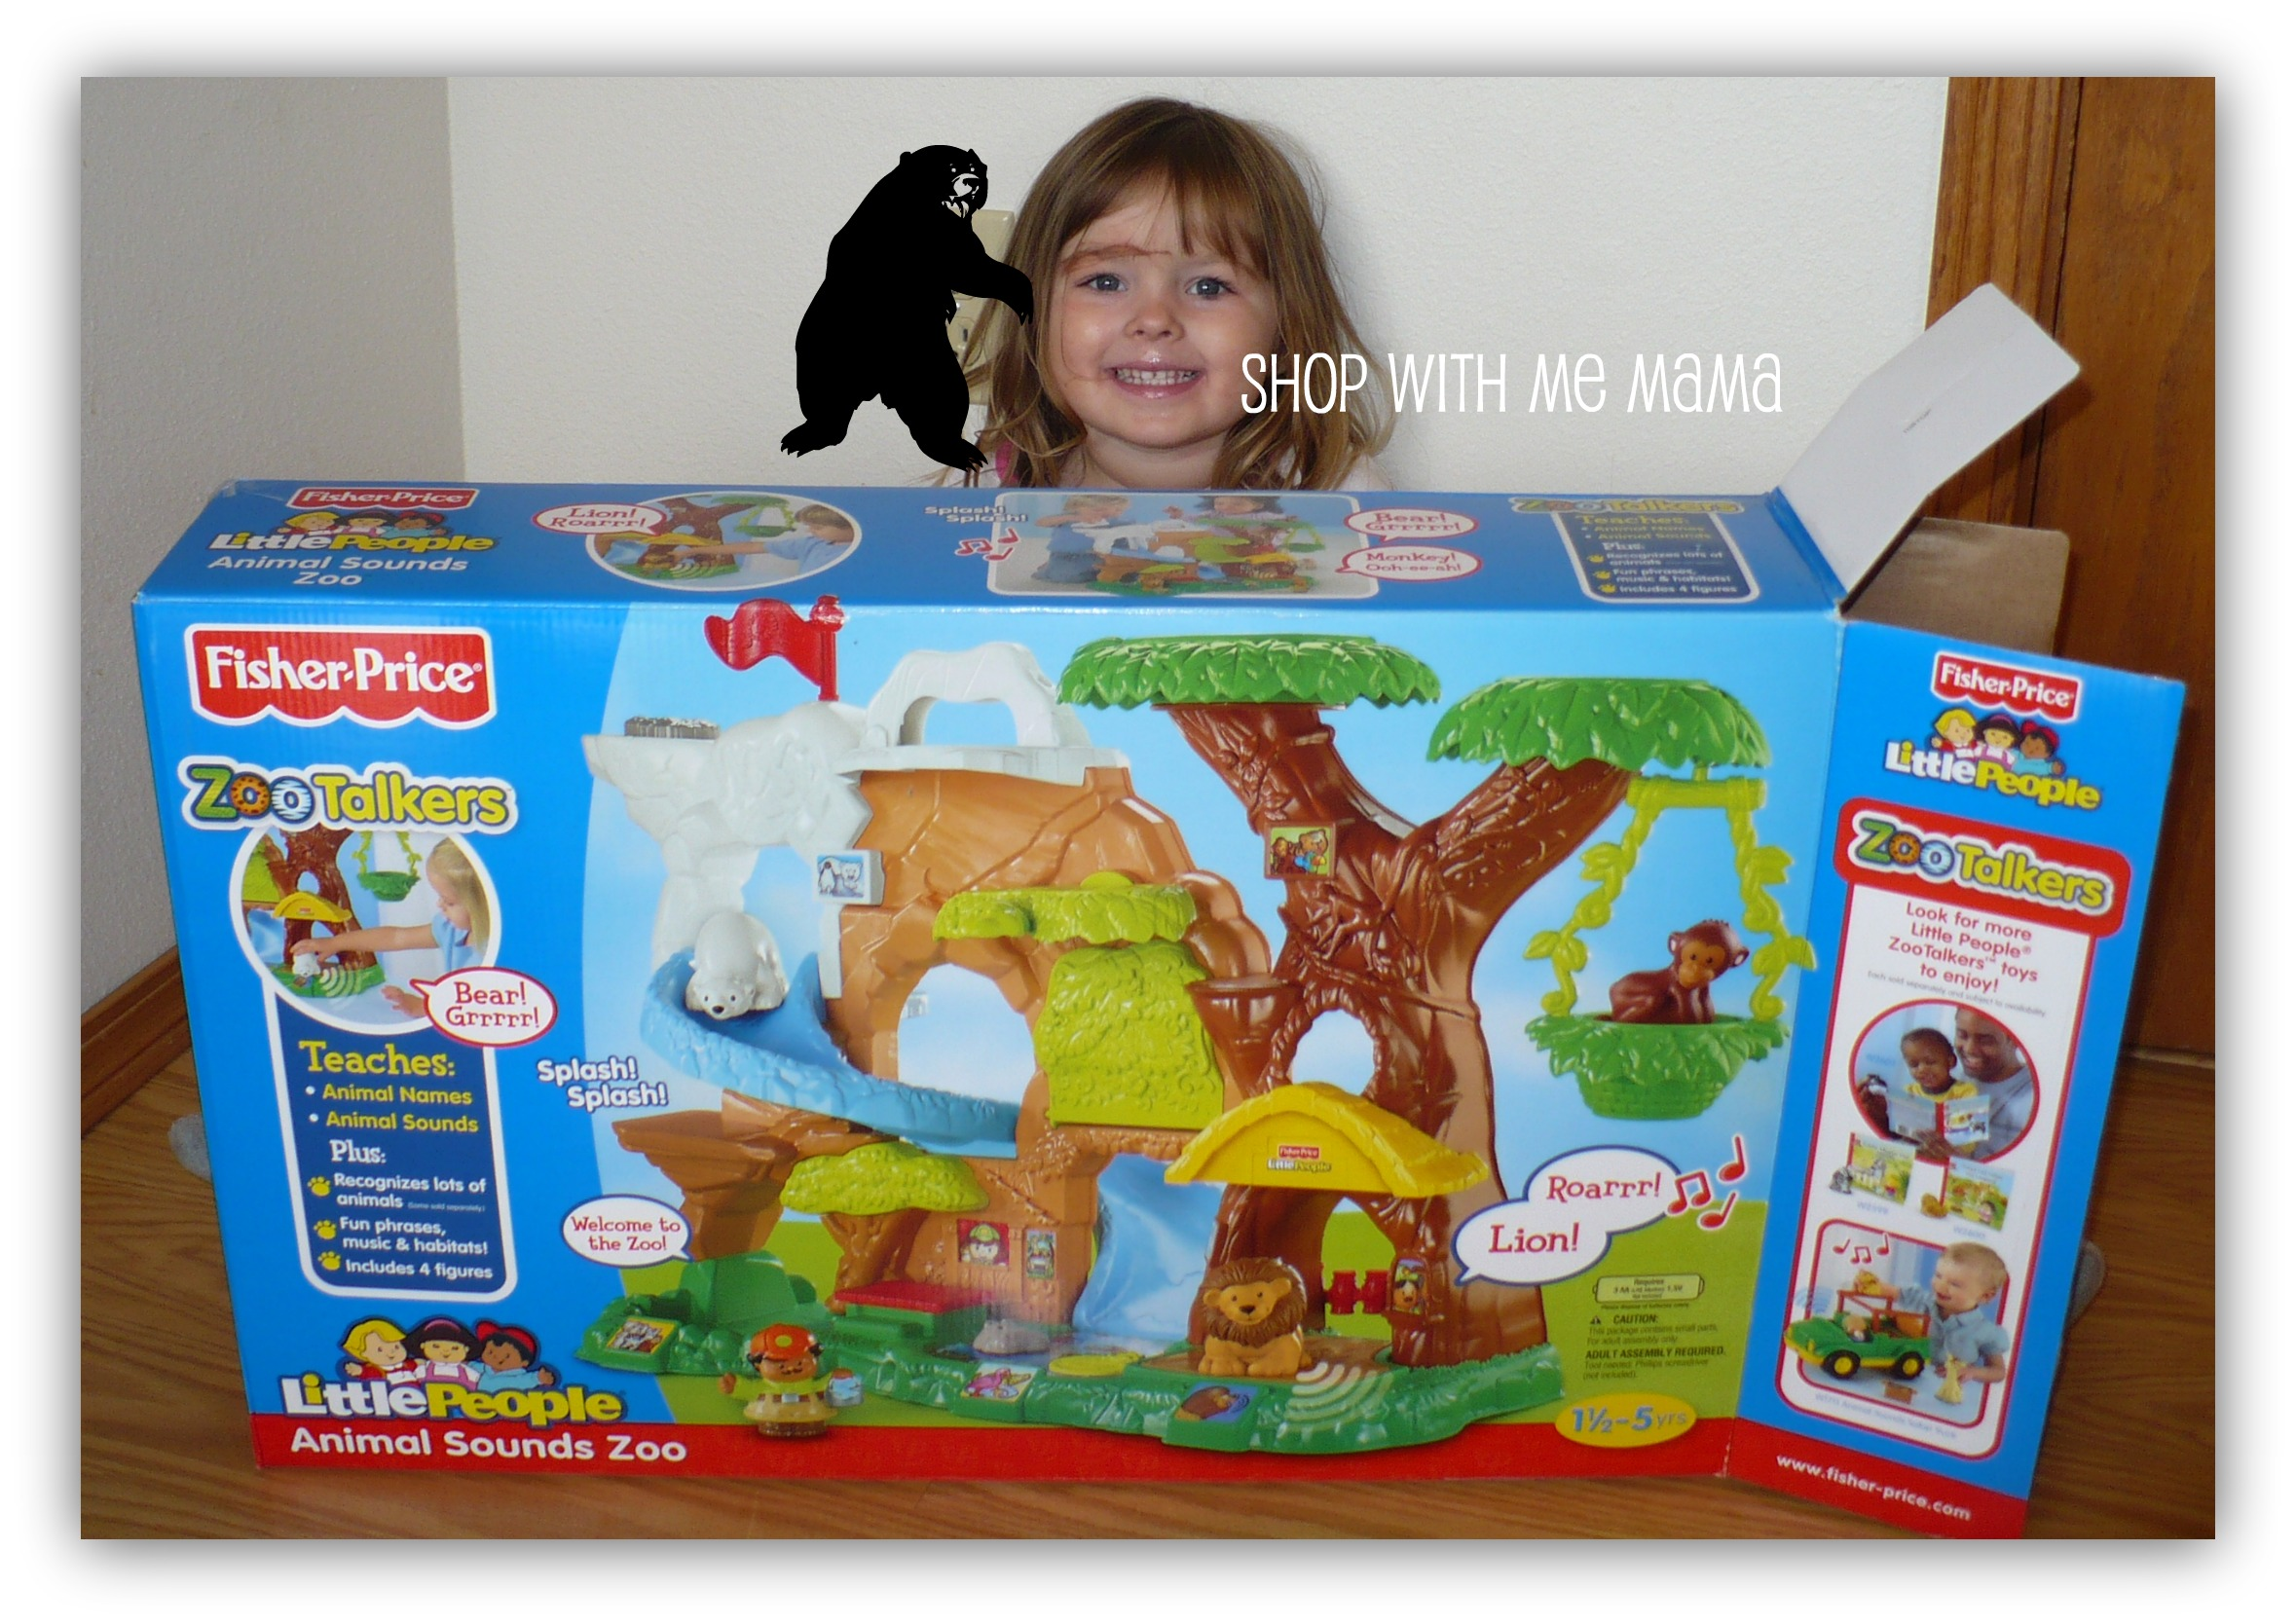 Toys Games Toy Figure Playsets Fisher Price Little People Zoo Talkers Animal Sounds Zoo